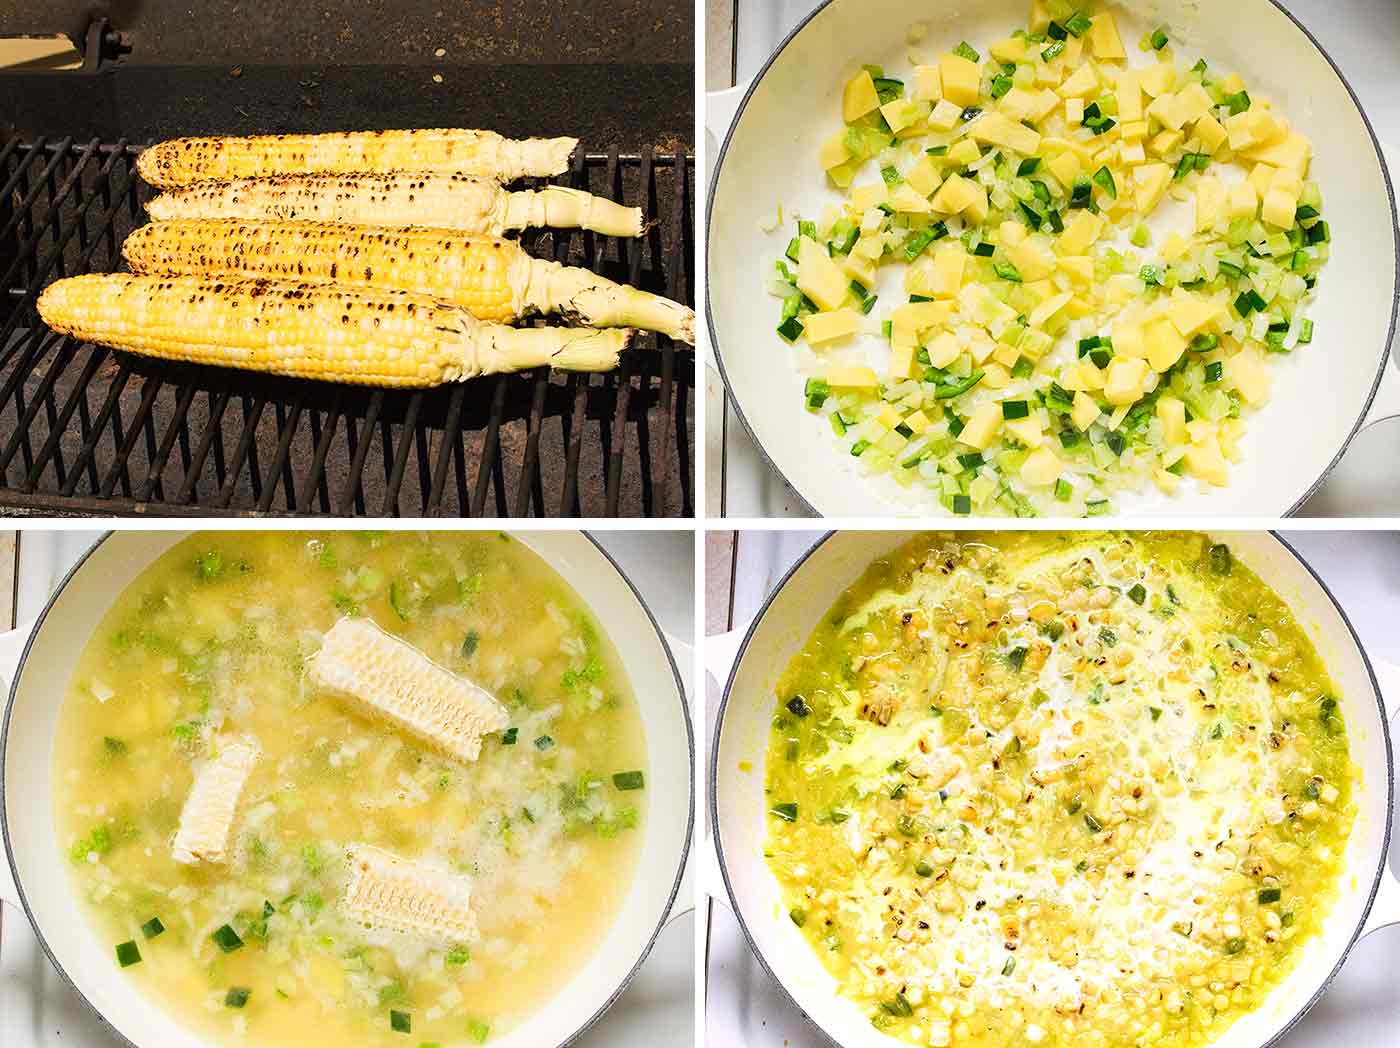 Step by step photos for making Mexican Street Corn Soup